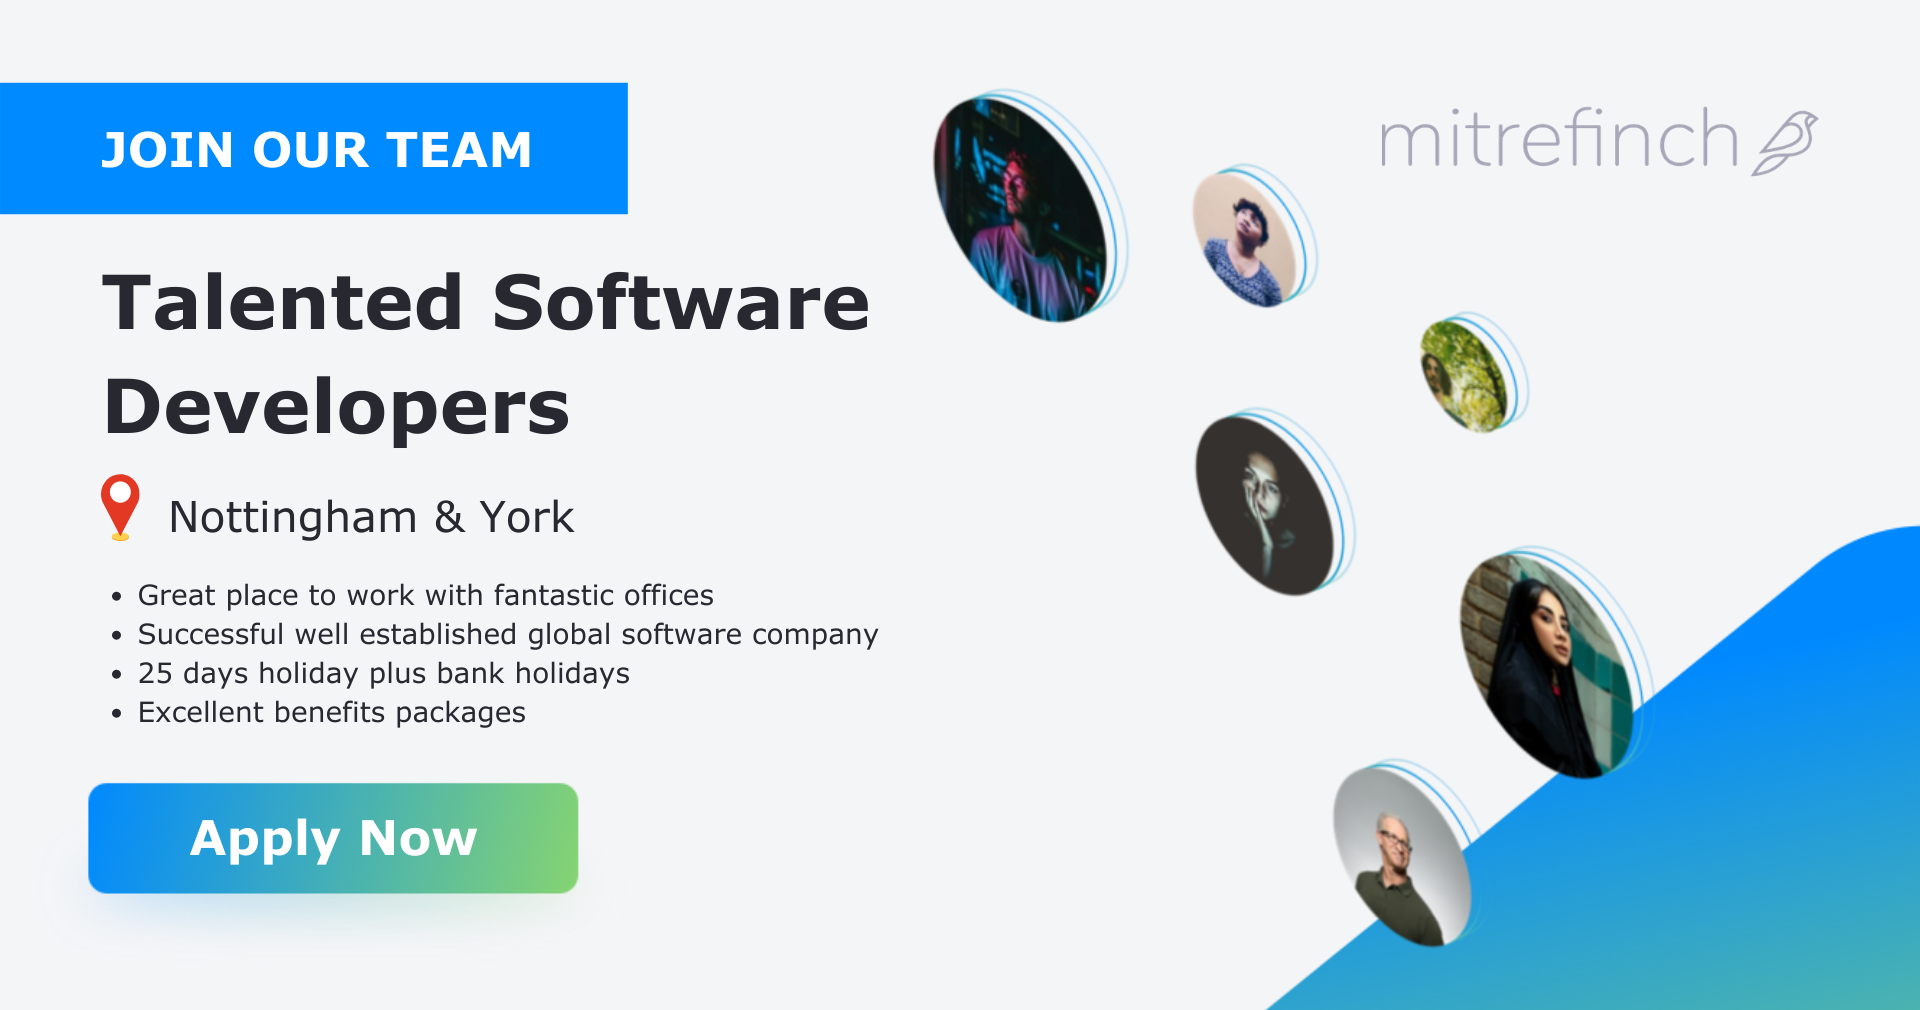 Apply Now: Talented Software Developers   Mitrefinch UK